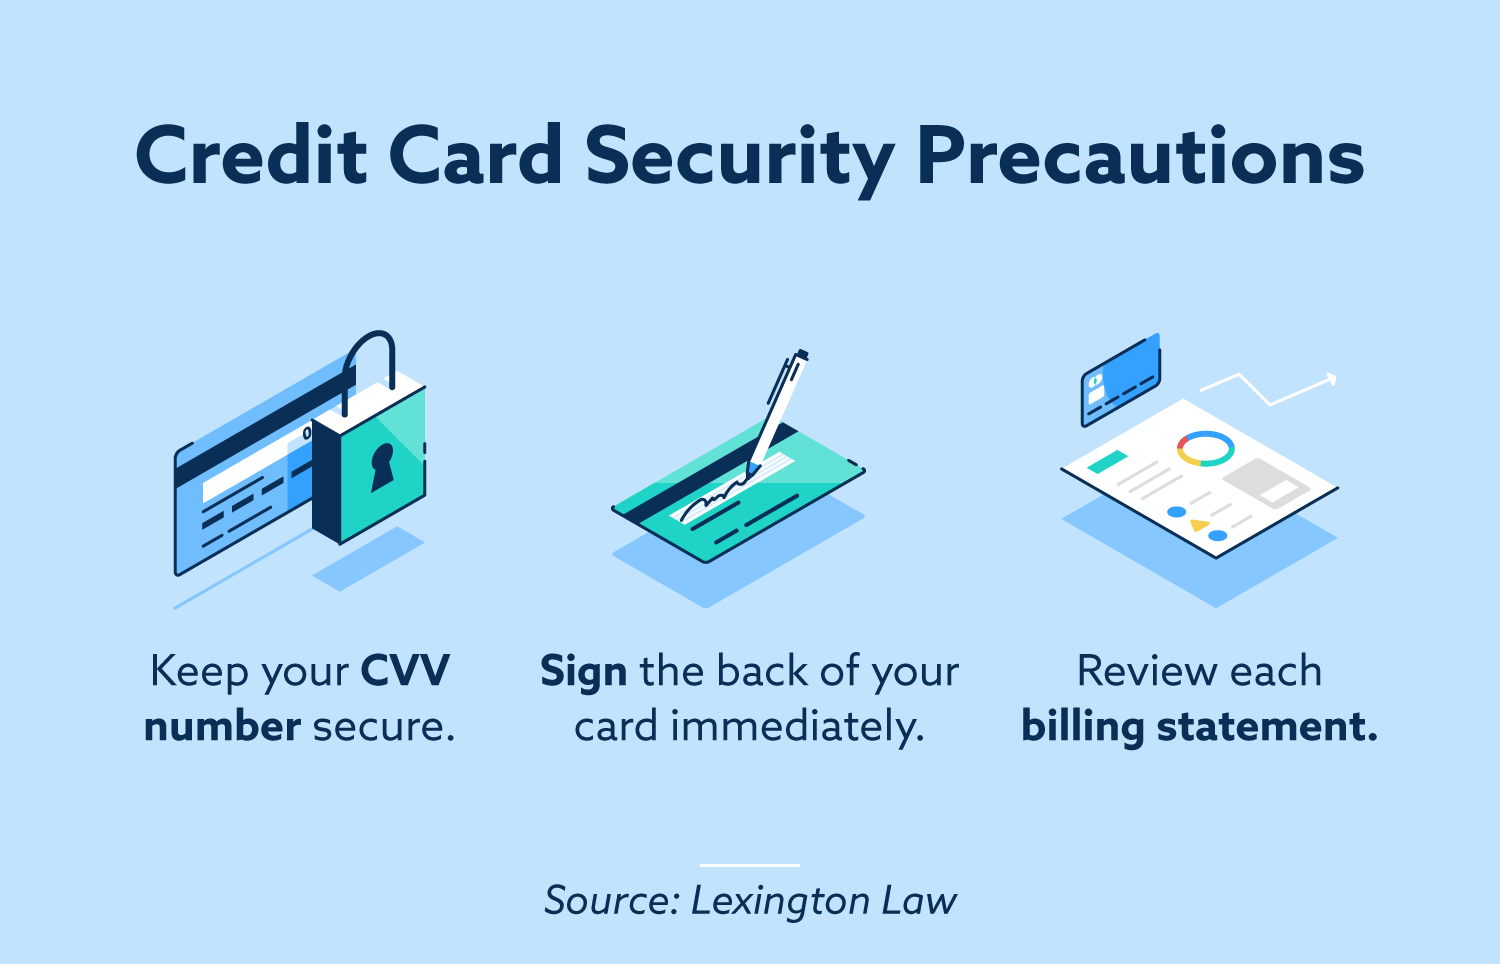 Credit card security precautions.